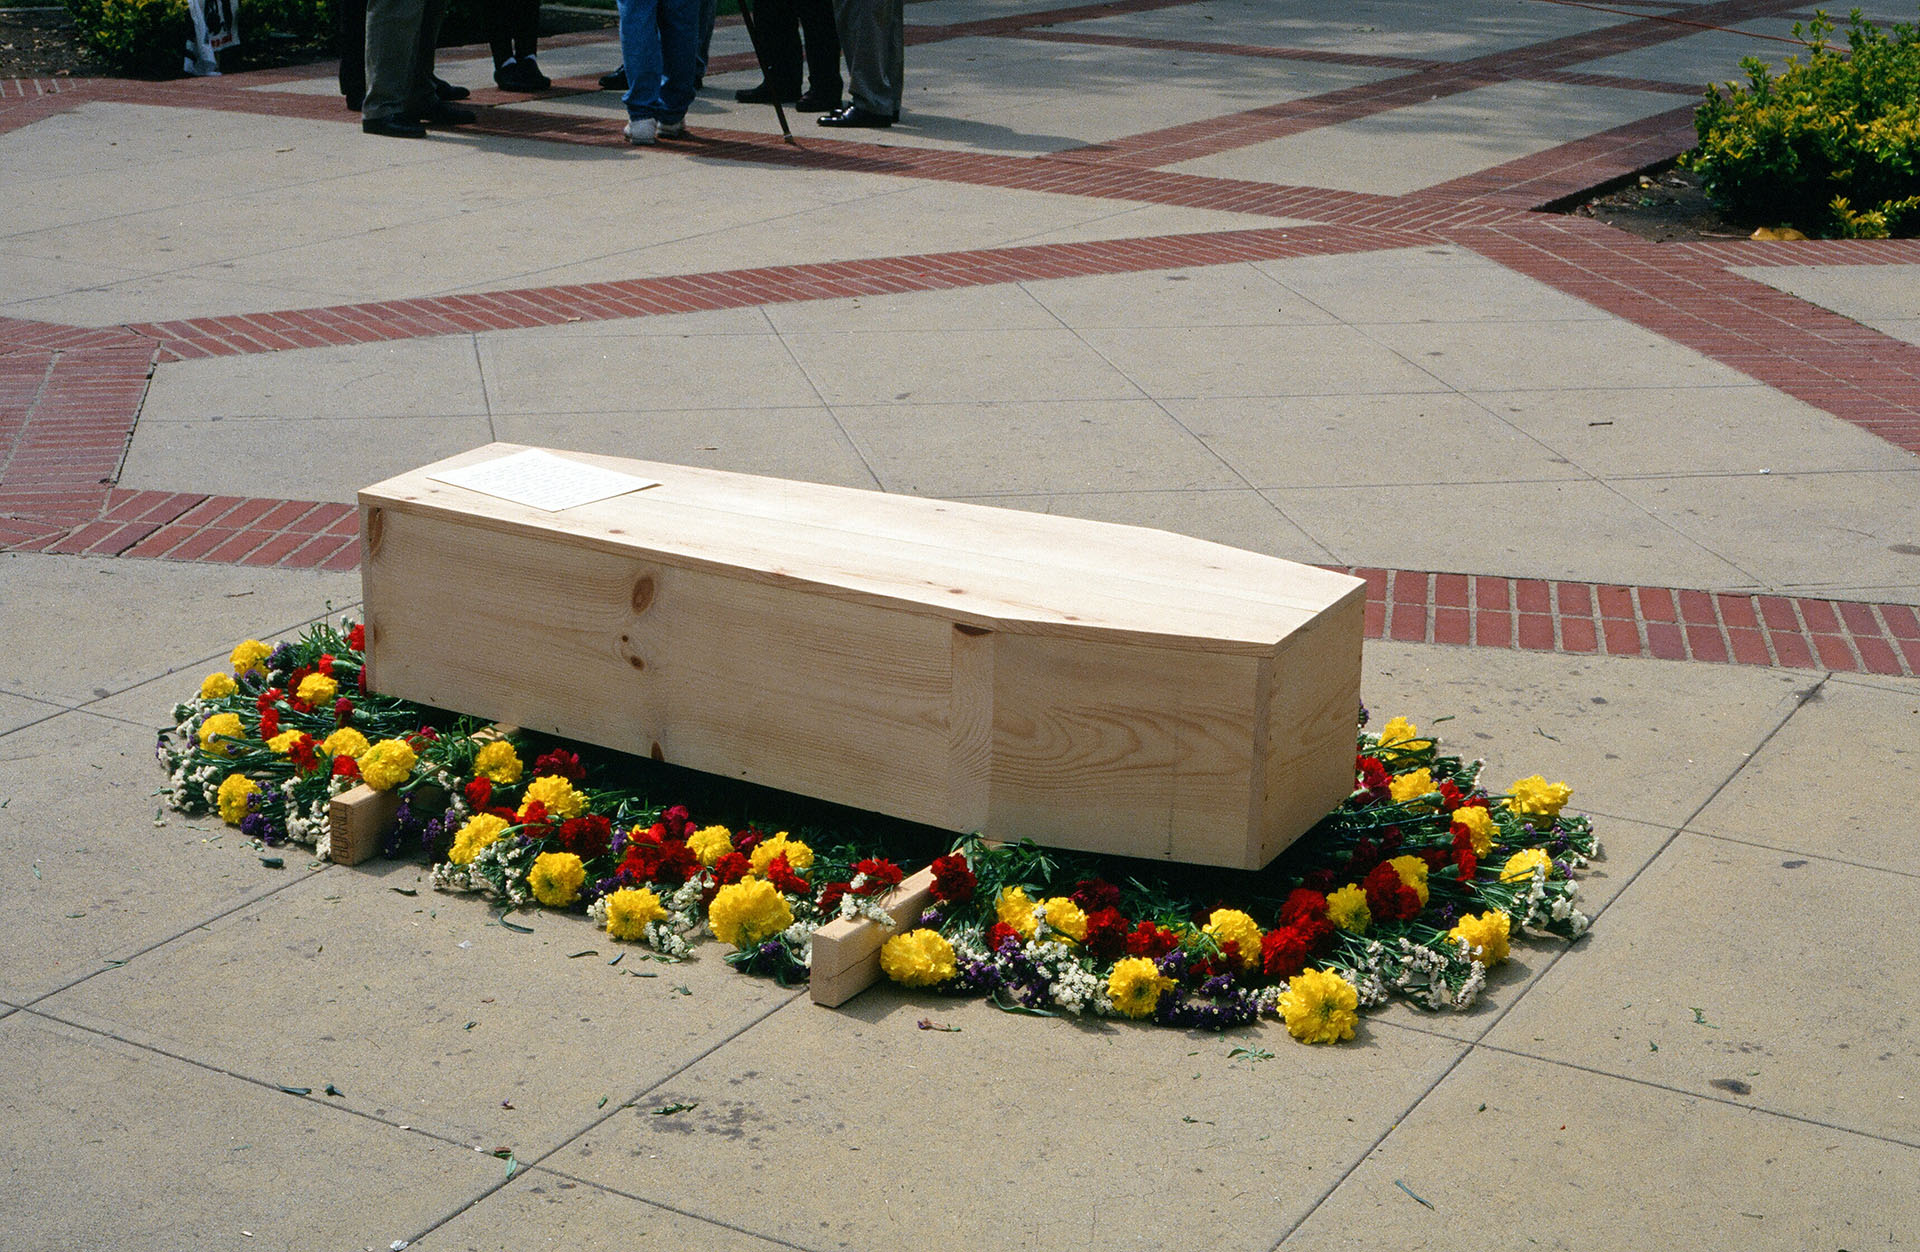 coffin-ucla-300dpi.jpg